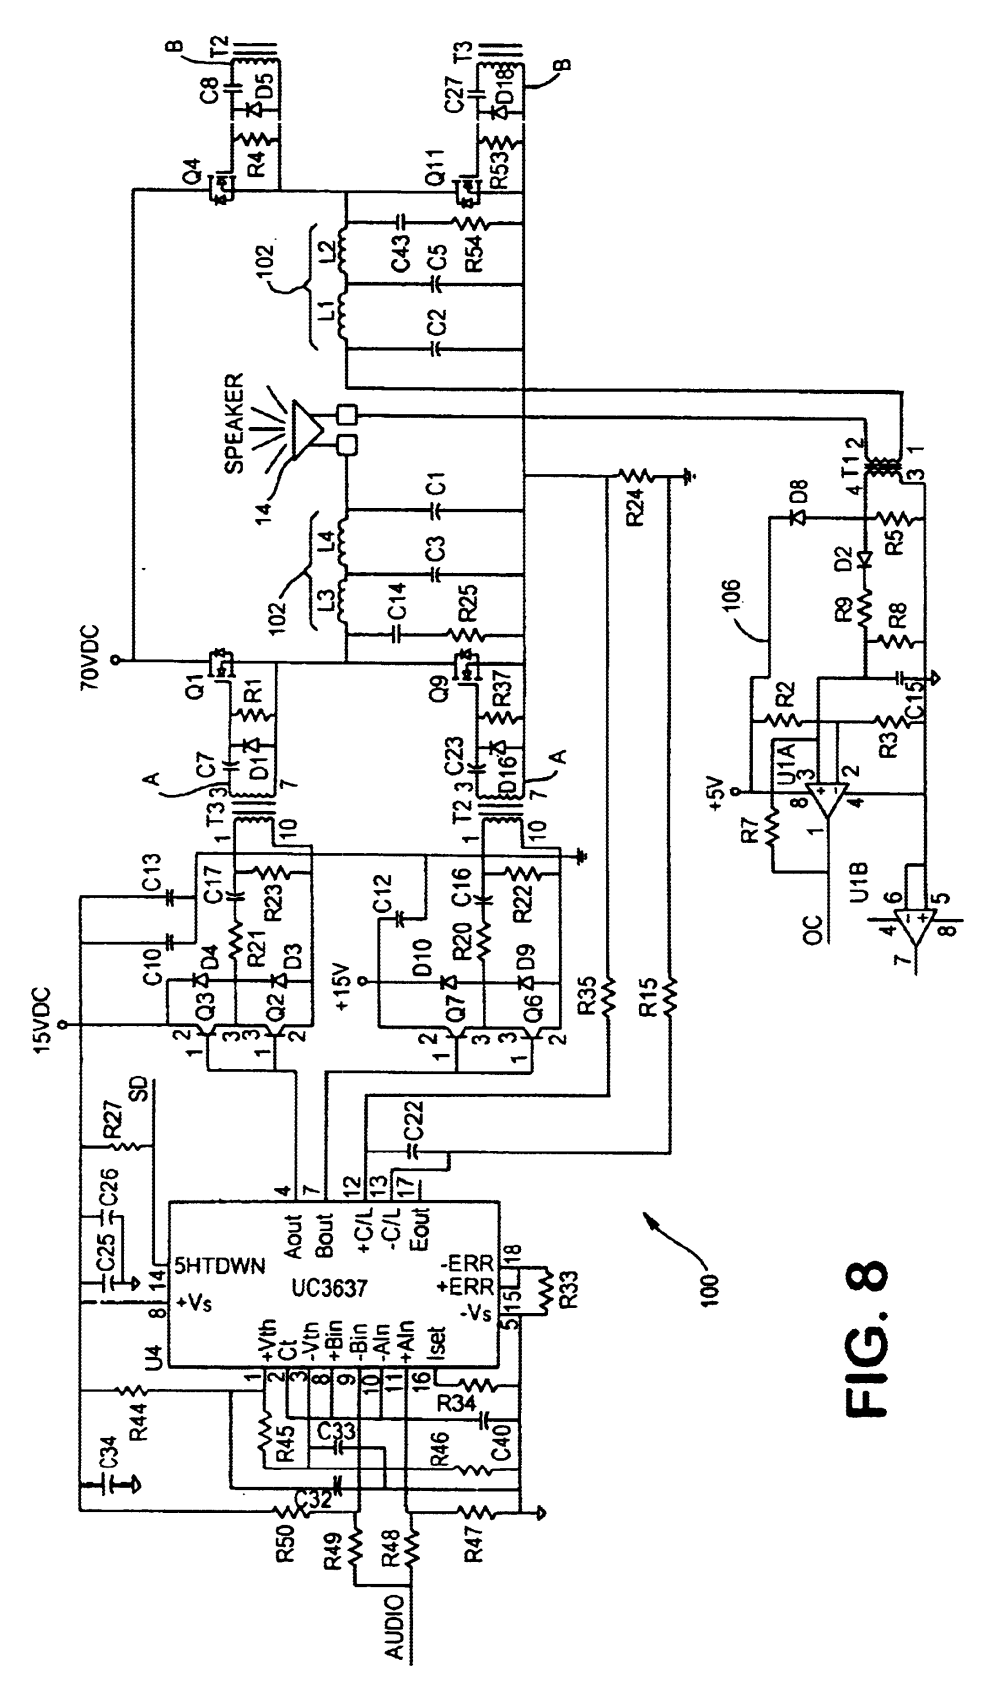 medium resolution of whelen siren 295slsa6 wiring diagram 36 wiring diagram images rh cita asia whelen power supply wiring